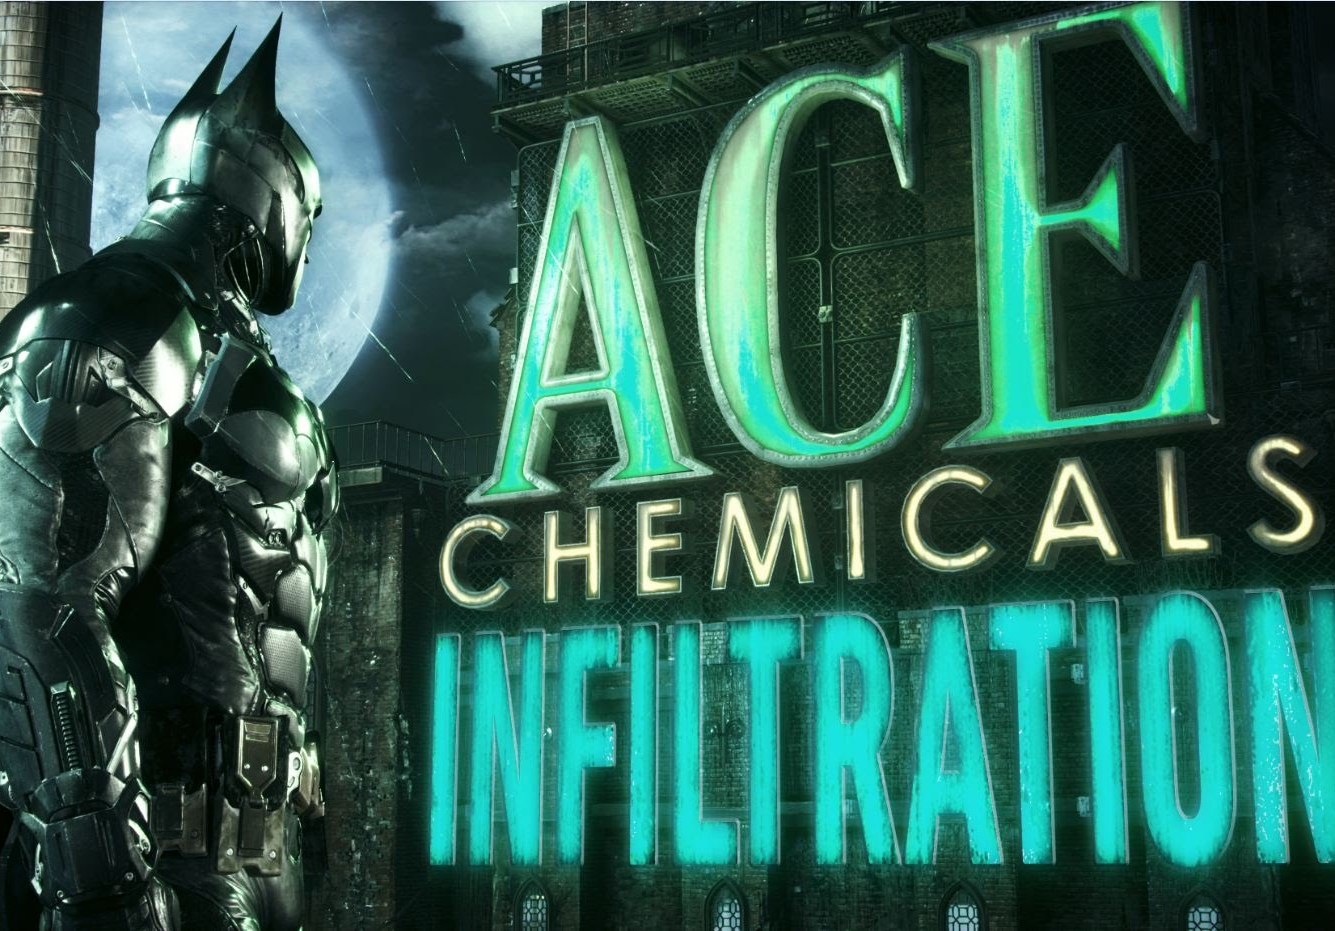 Batman: Arkham Knight - Ace Chemicals Infiltration Trailer: Part 2